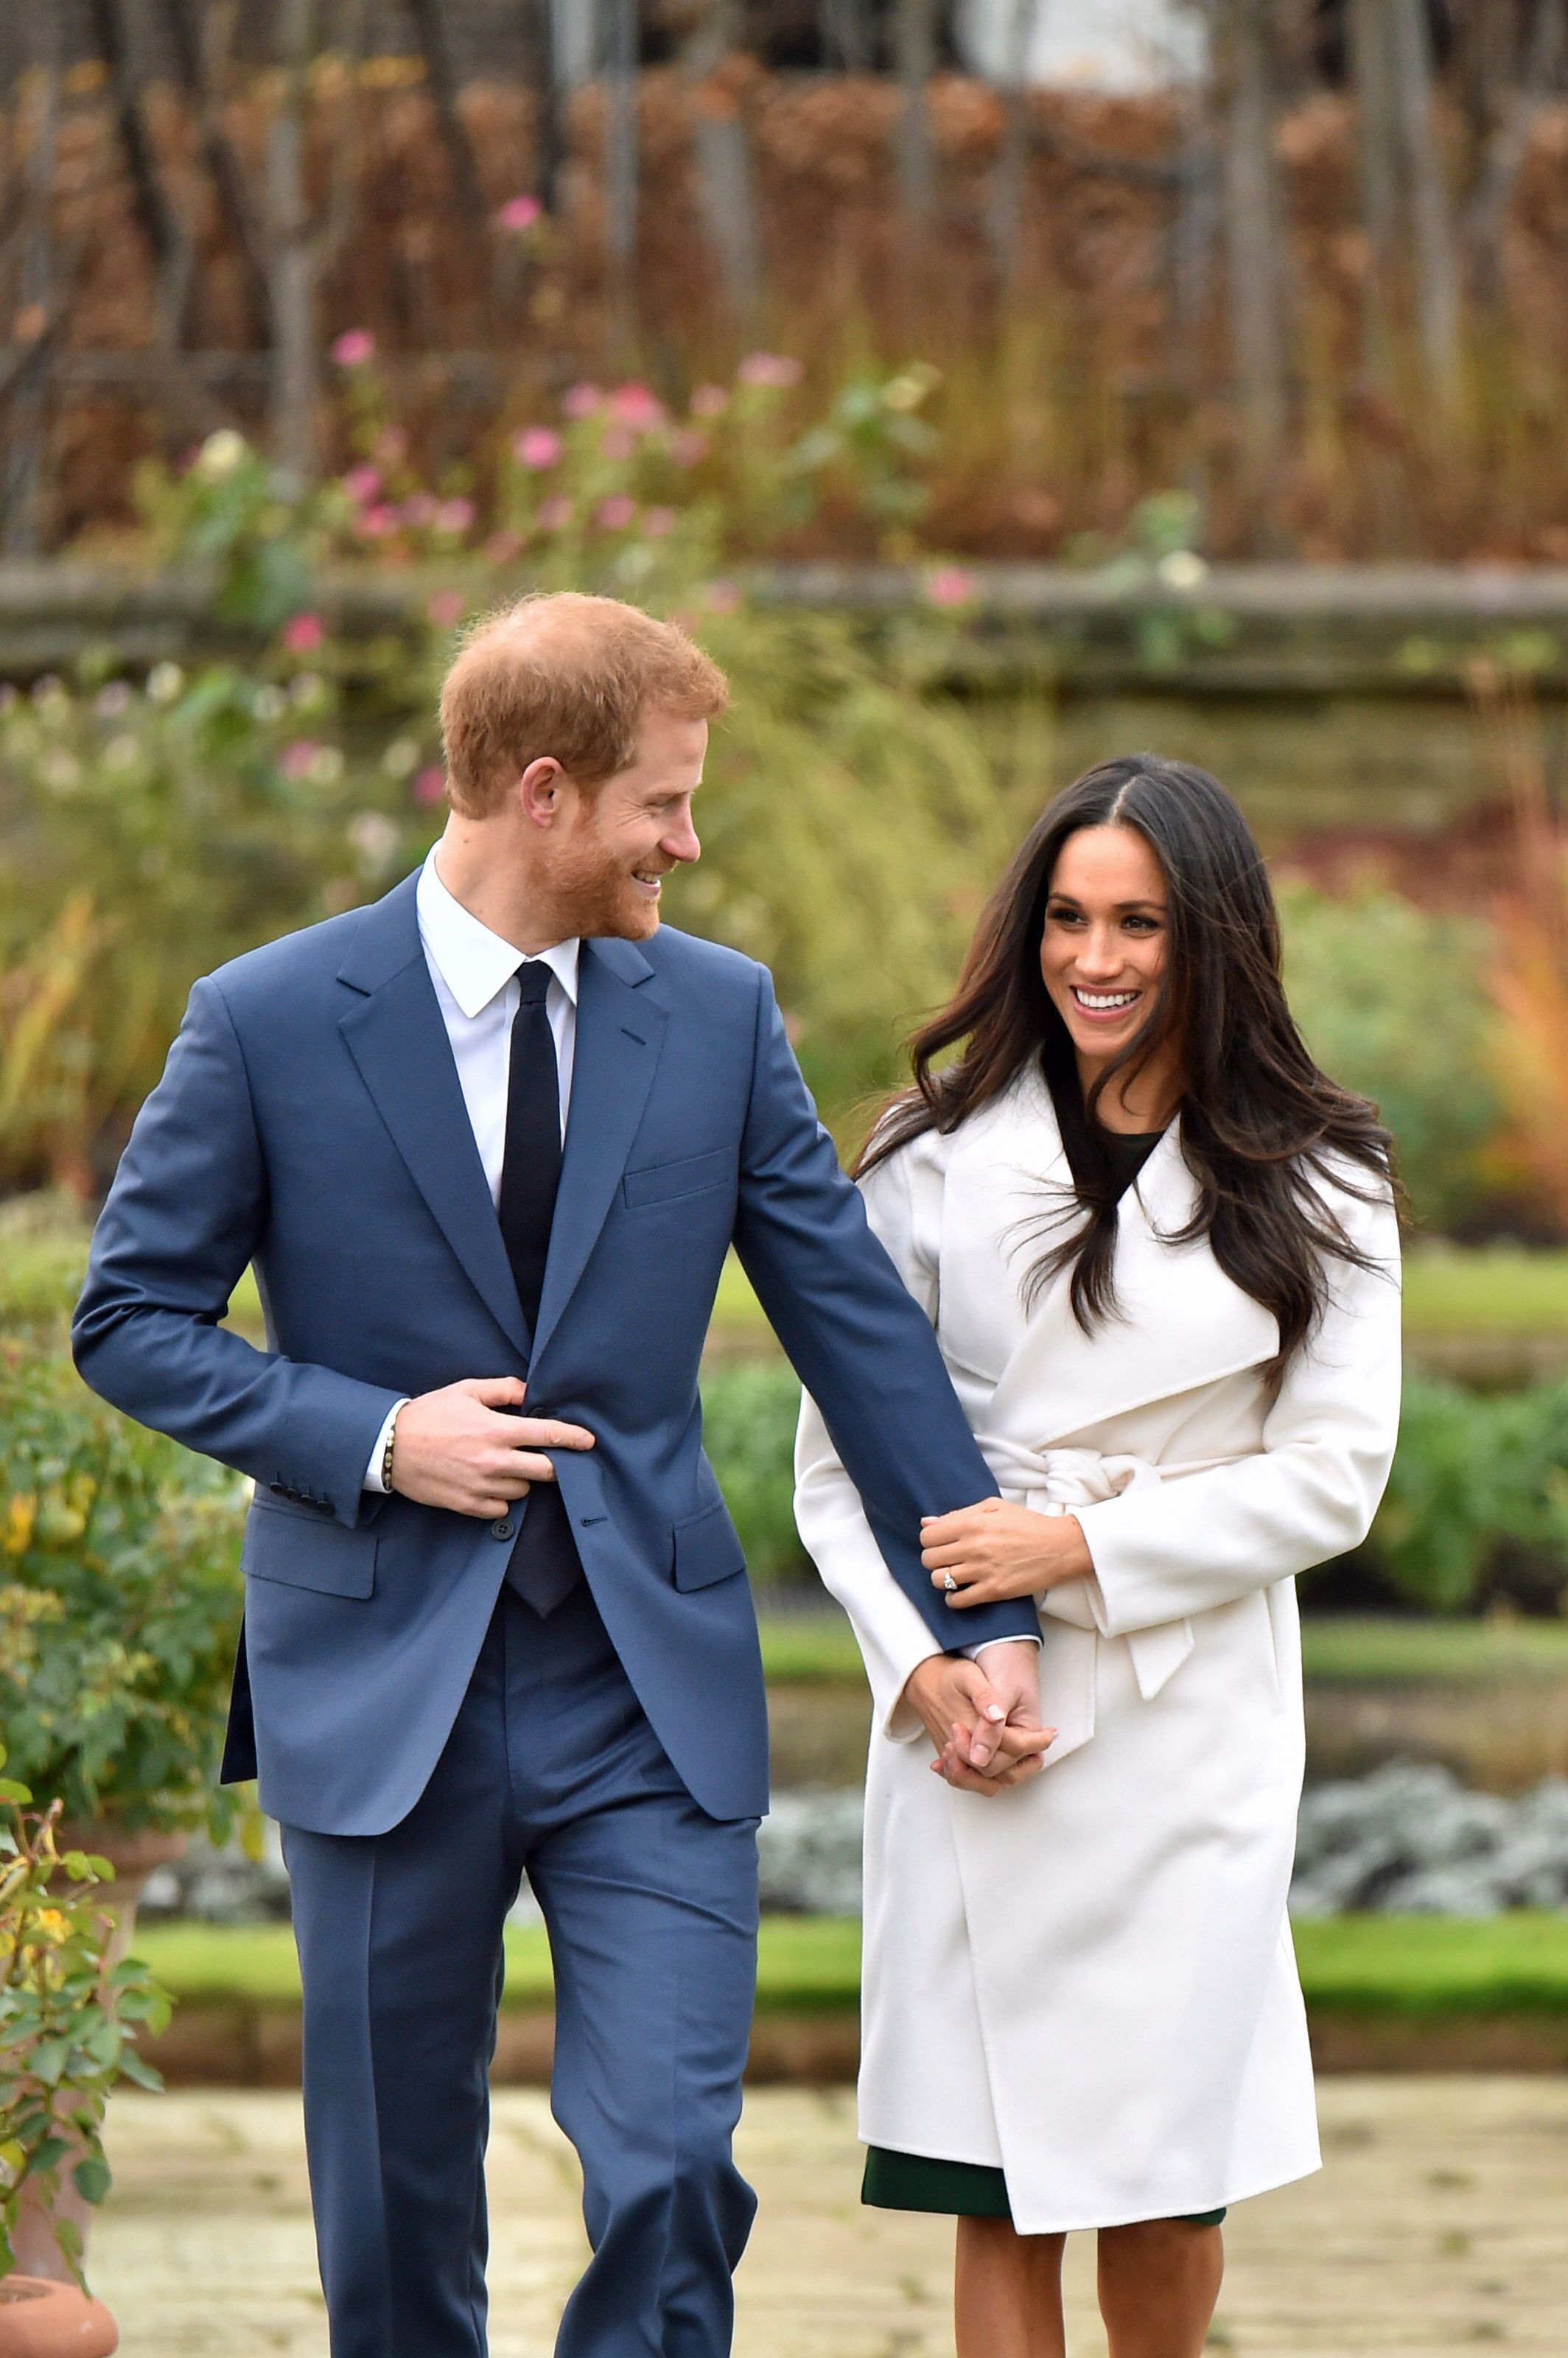 Prince Harry and Meghan Markle in the Sunken Garden at Kensington Palace, London, after the announcement of their engagement. | Source: Getty Images